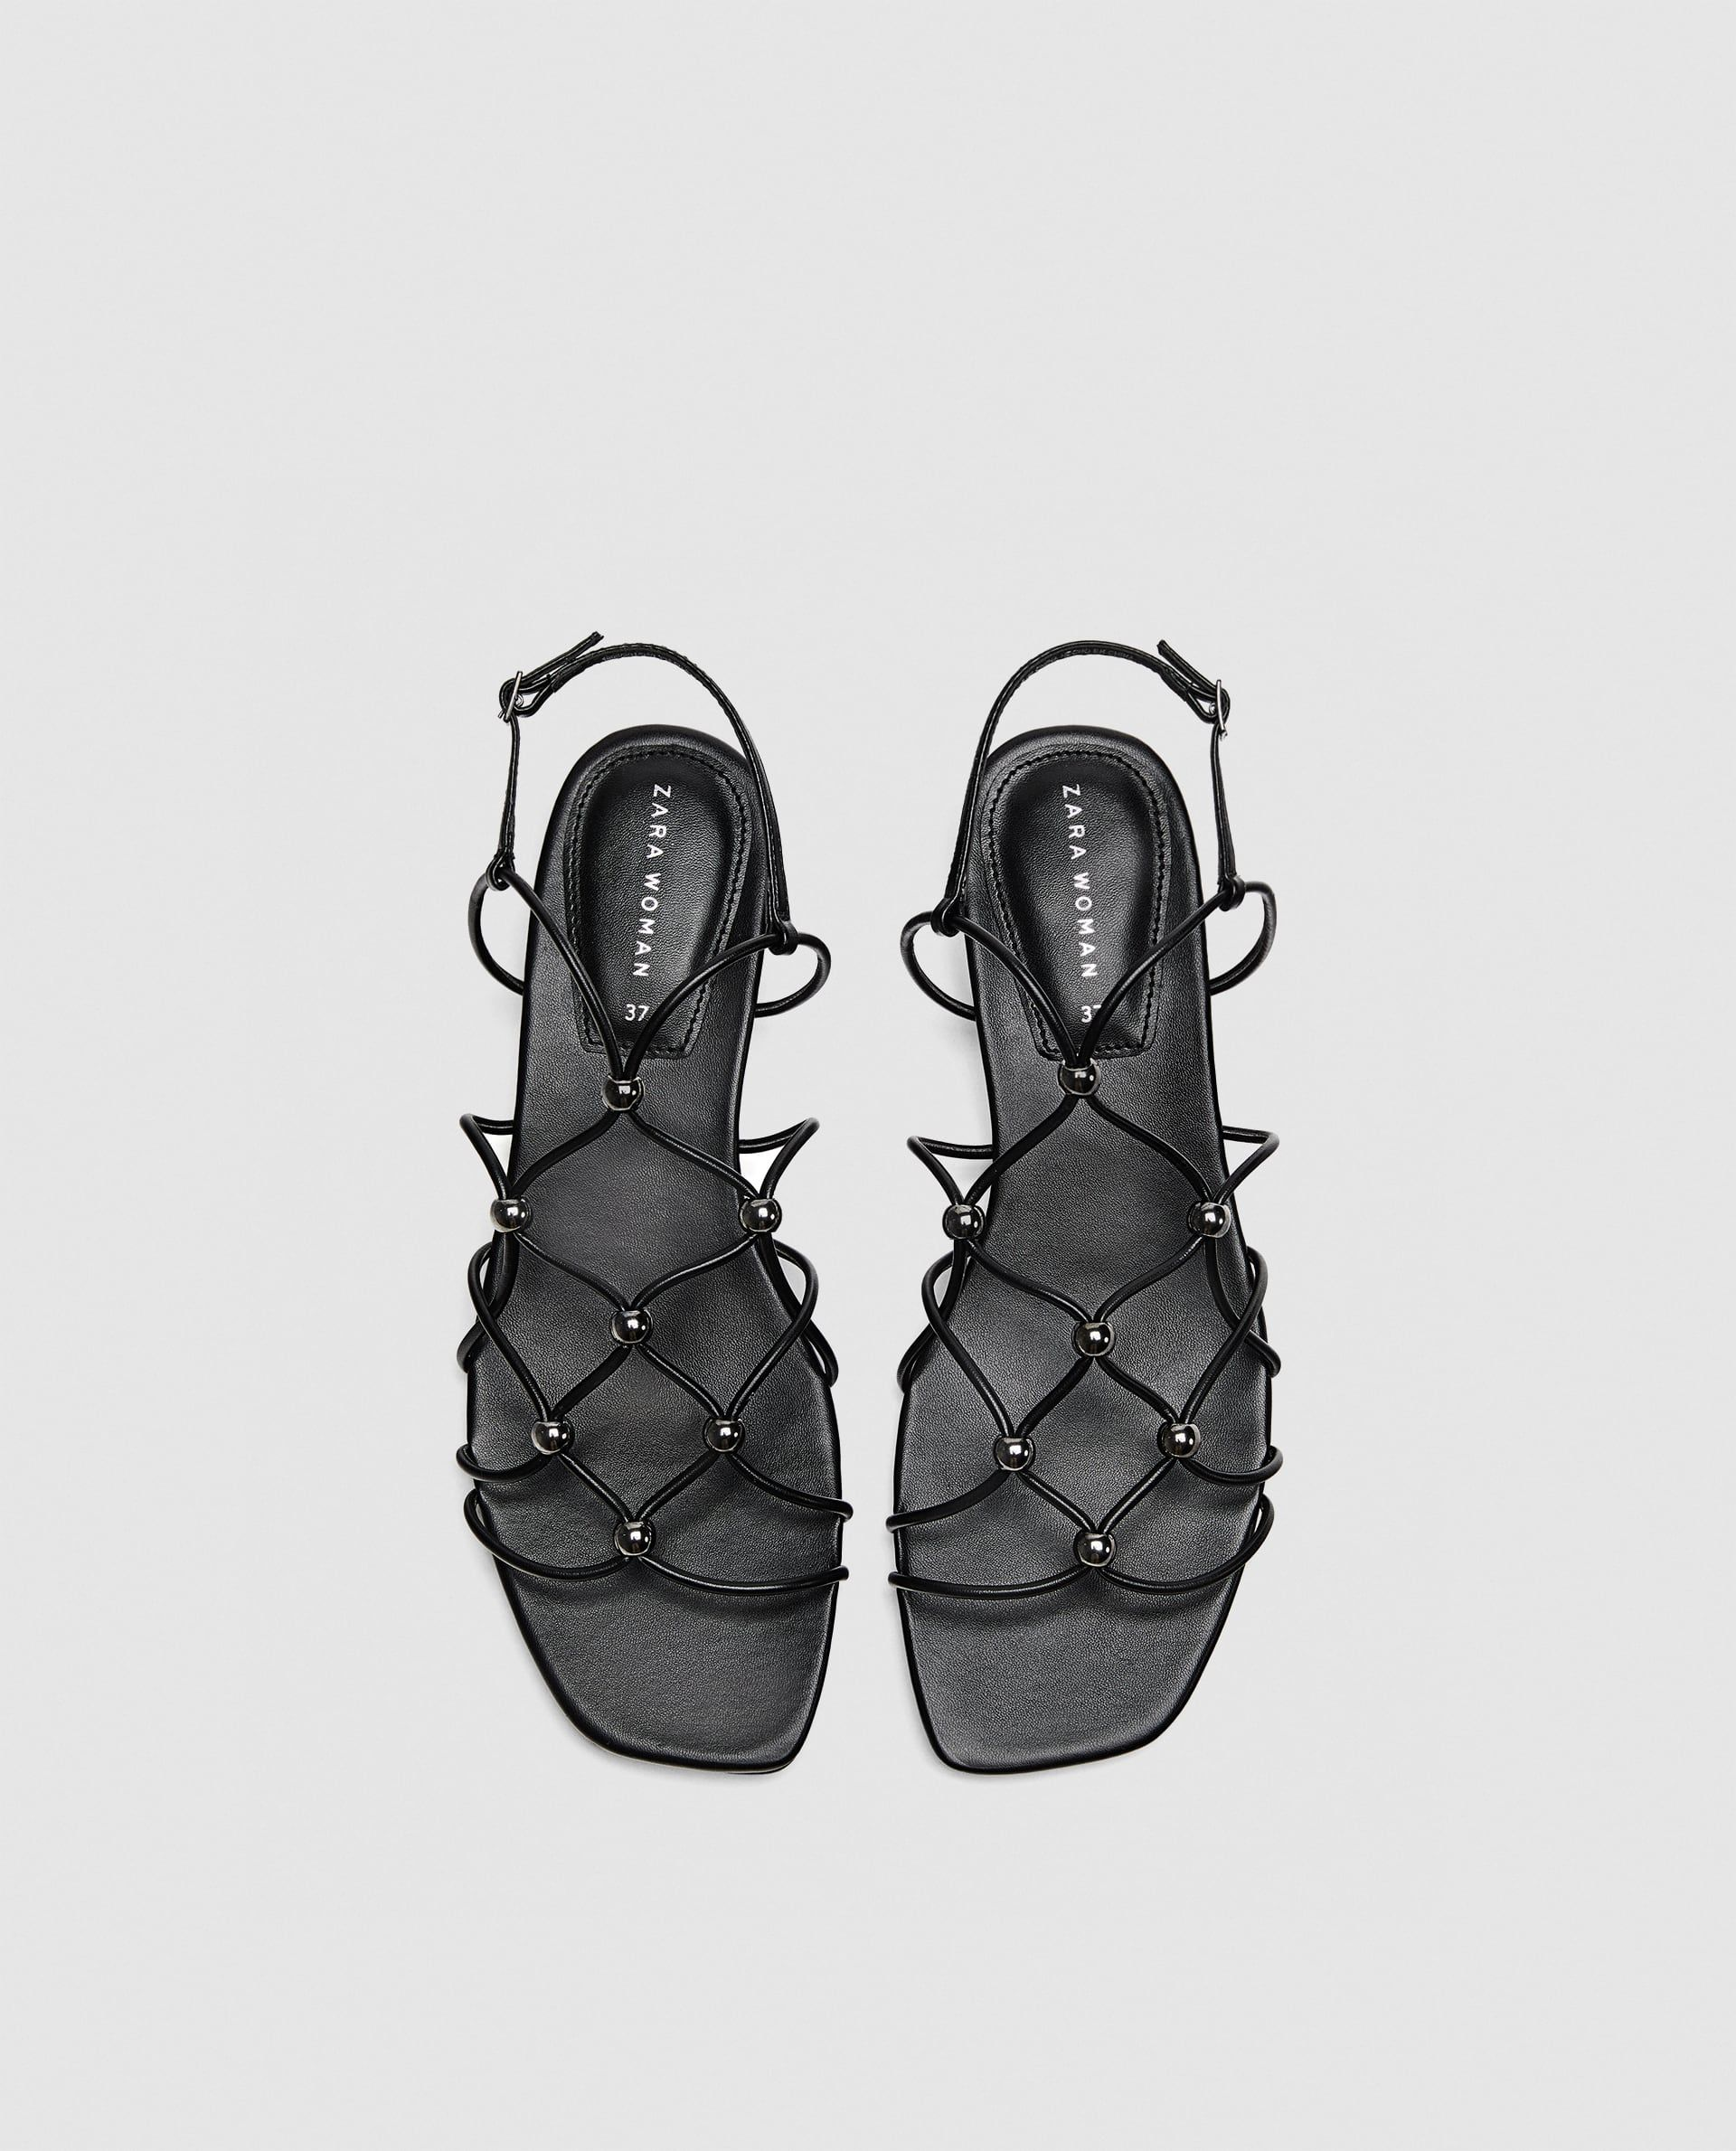 f66bdfd6a17c Image 3 of STRAPPY SANDALS WITH METAL DETAILS from Zara